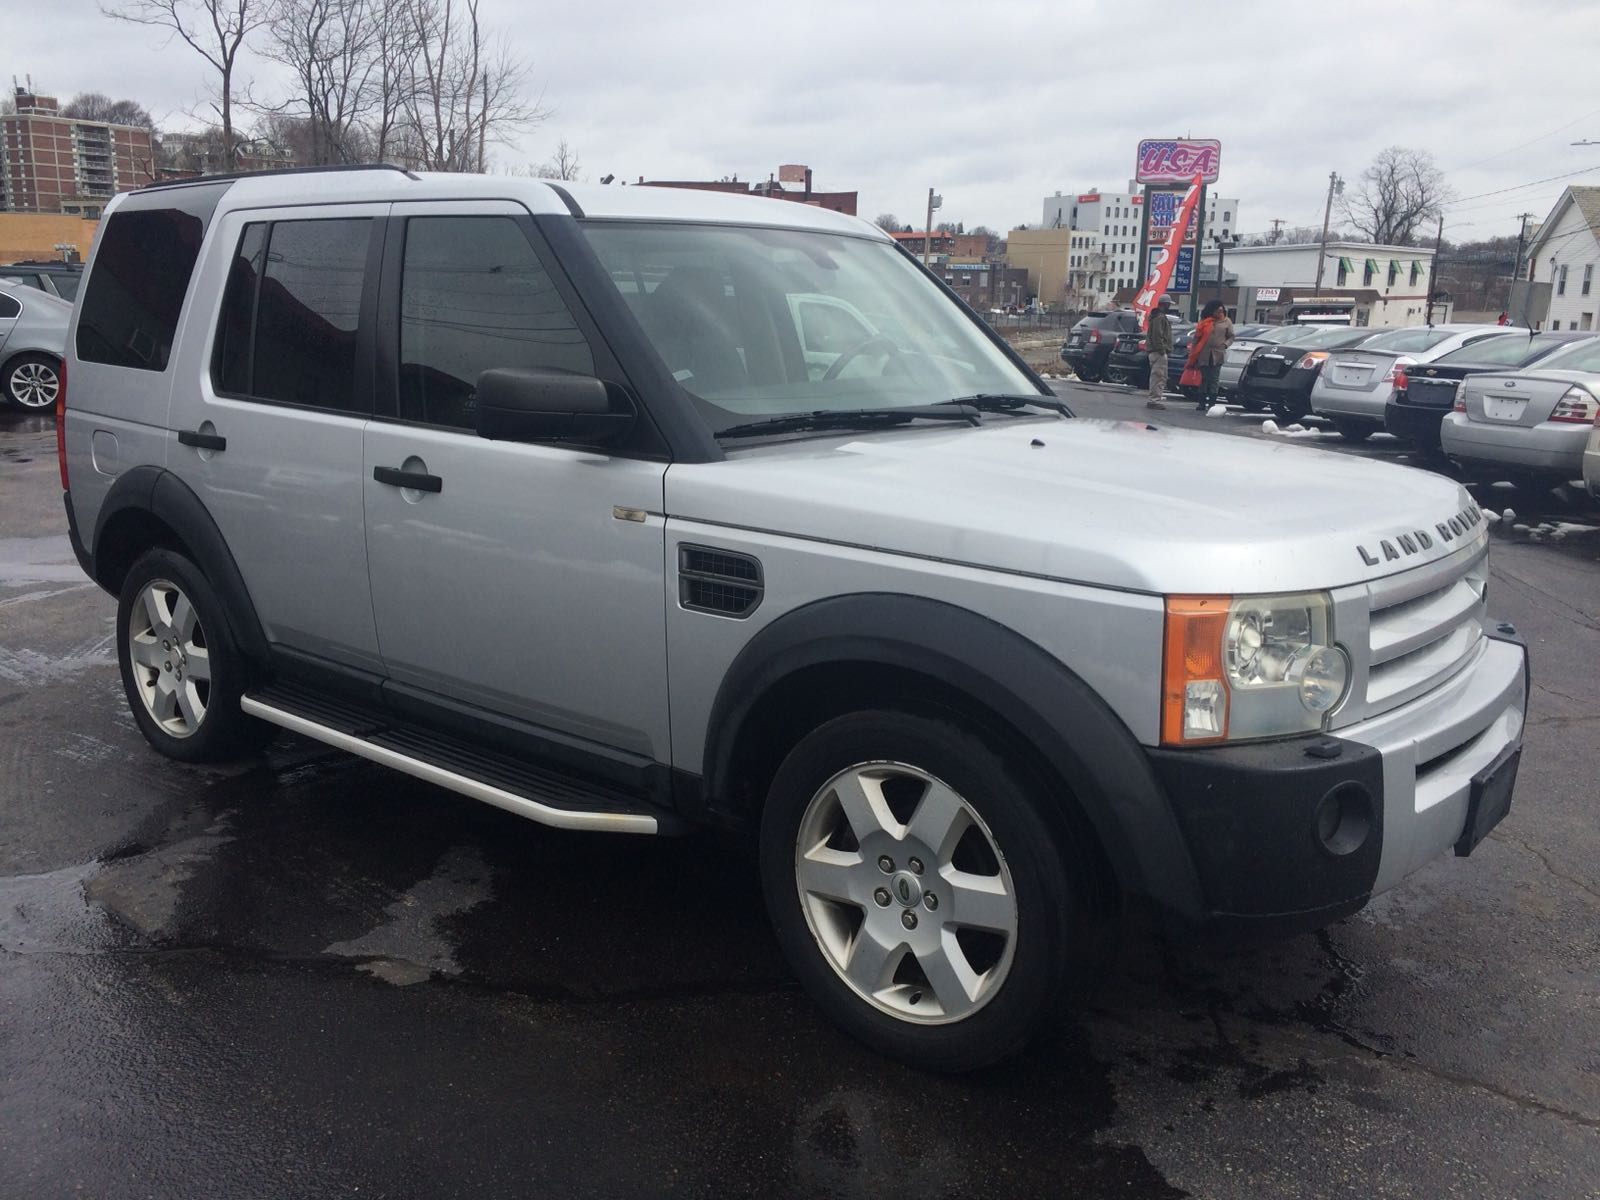 salvage in on carfinder rover title ga copart land en for landrover online auto of lot blue se savannah hse sale auctions cert